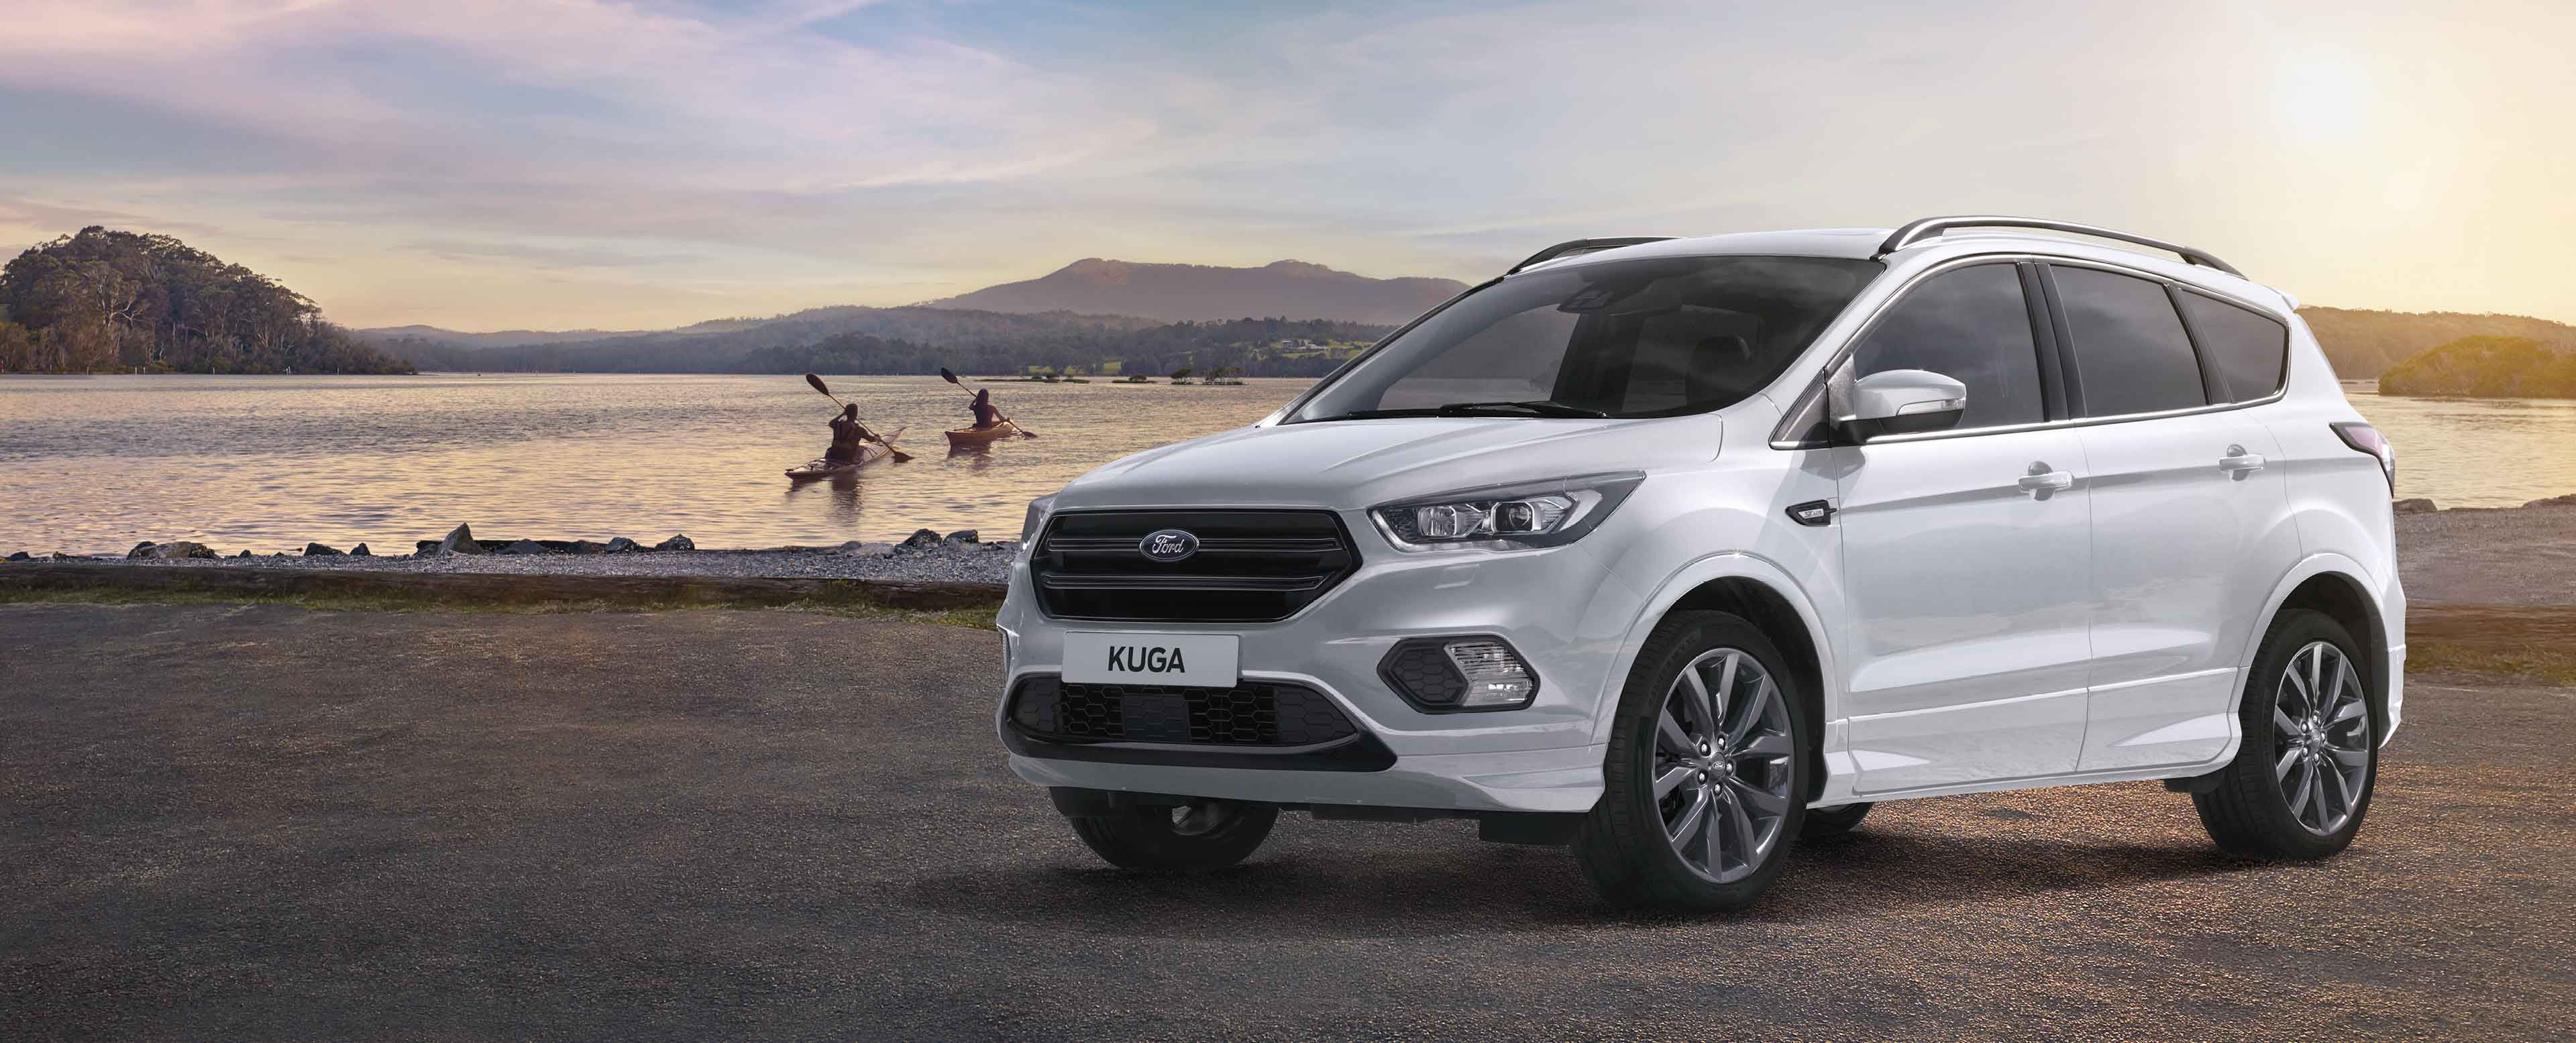 "<span style=""text-shadow: 1px 1px #444"">Ford Kuga AWD</span> 